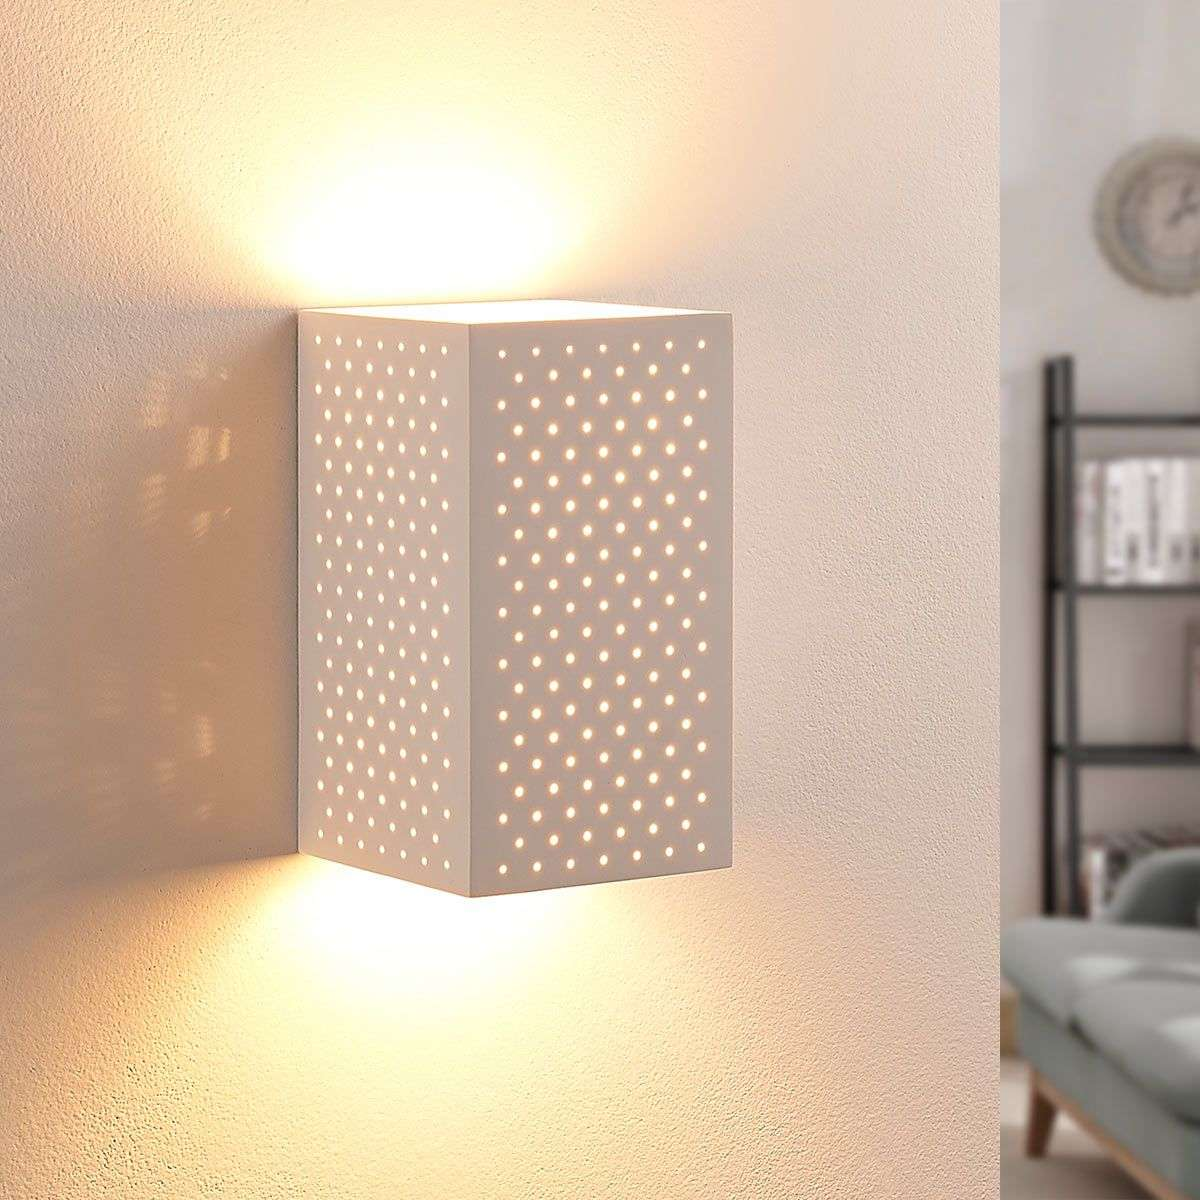 Led Wall Lights Plaster: Tereza - LED Plaster Wall Light With Holes